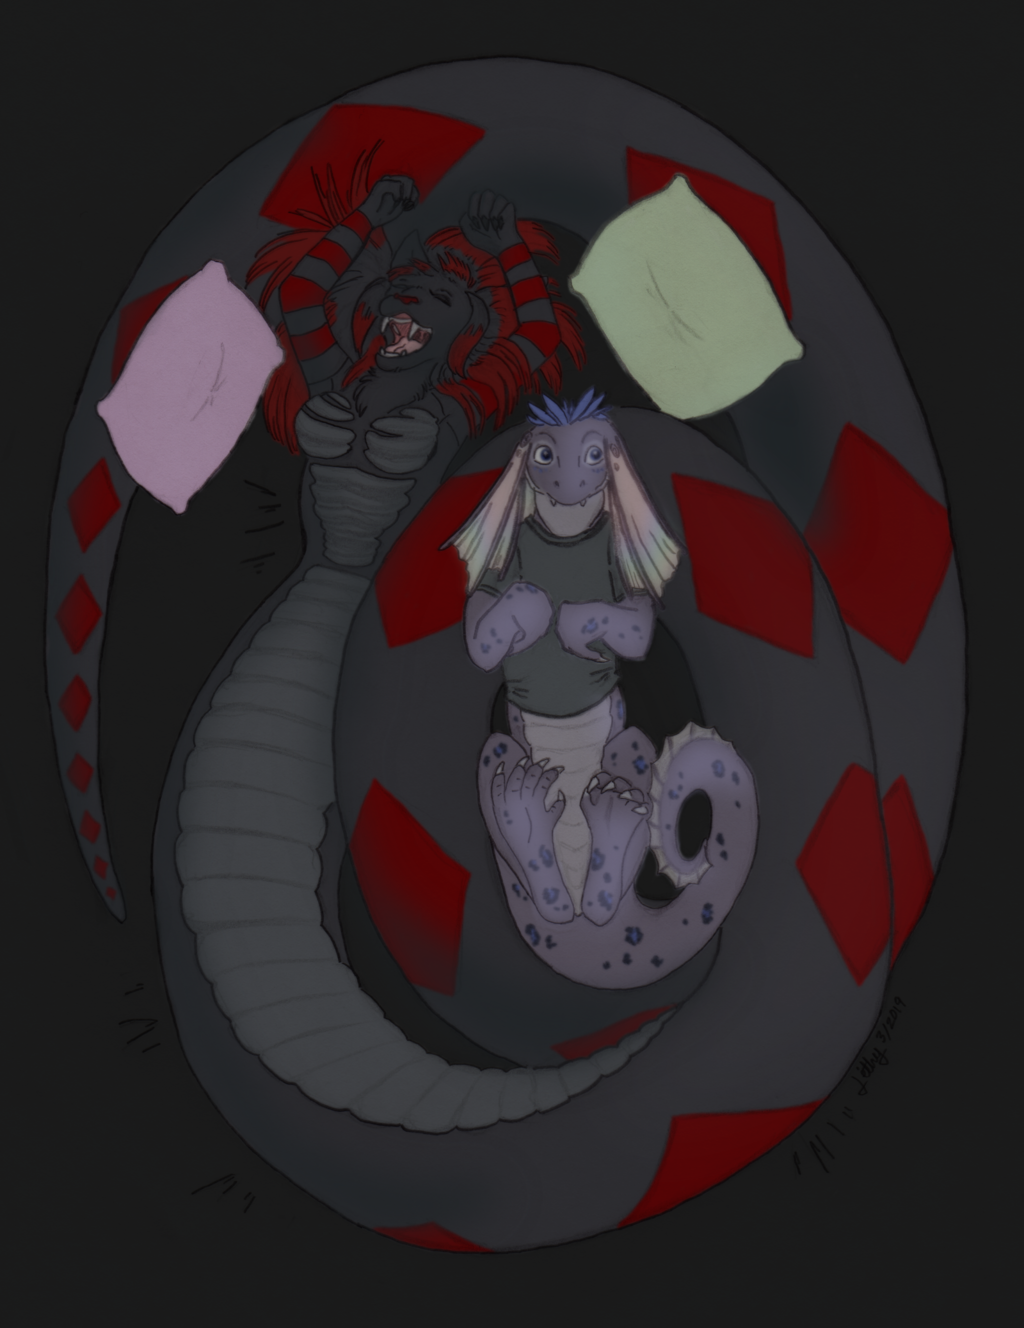 Sleeping with a catsnake - art by Lithy